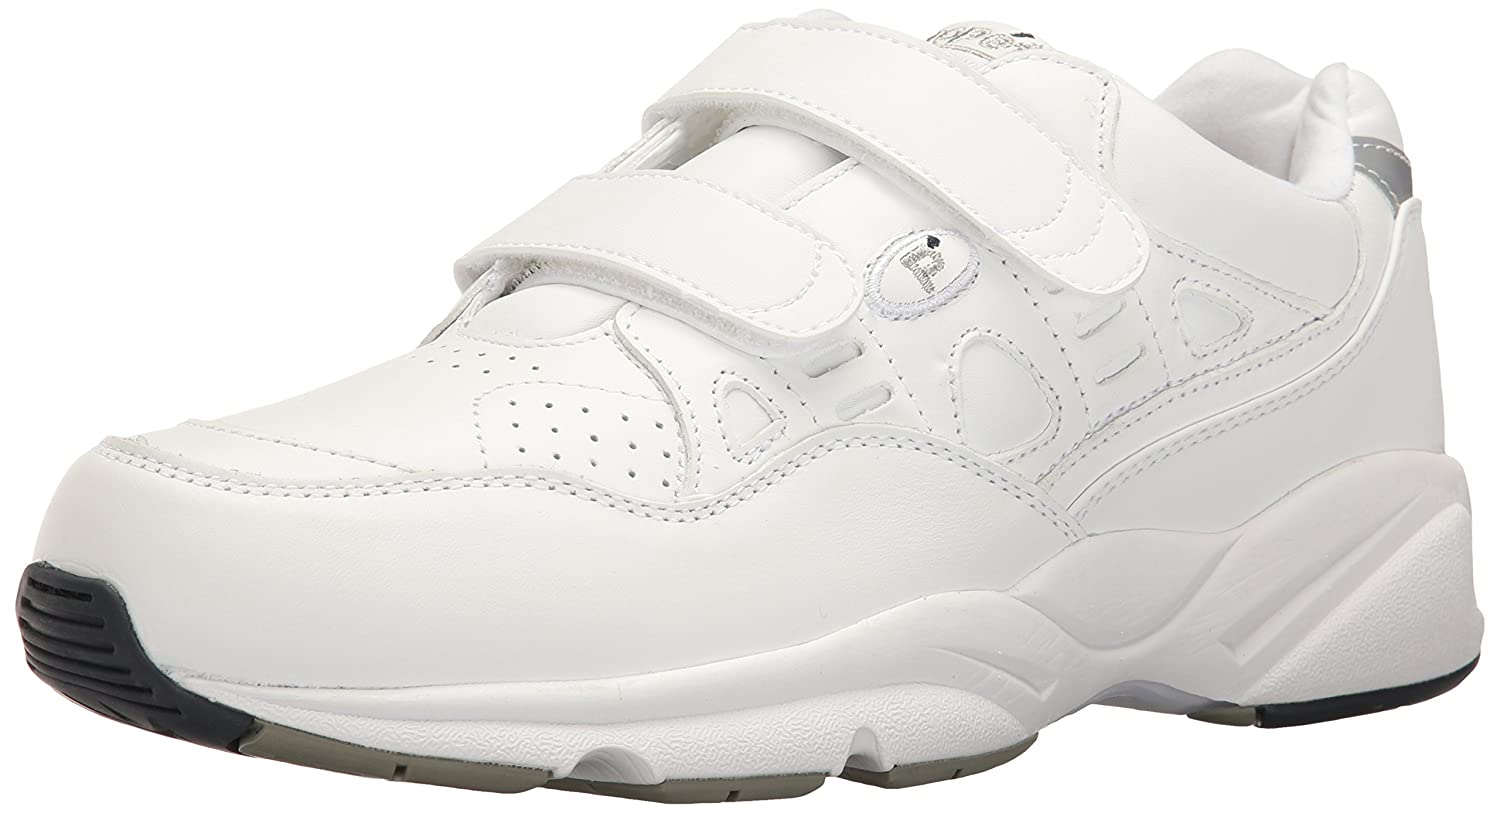 Propet Women's Stability Walker Strap Walking Shoe B000P4LZL4 10 2E US|White